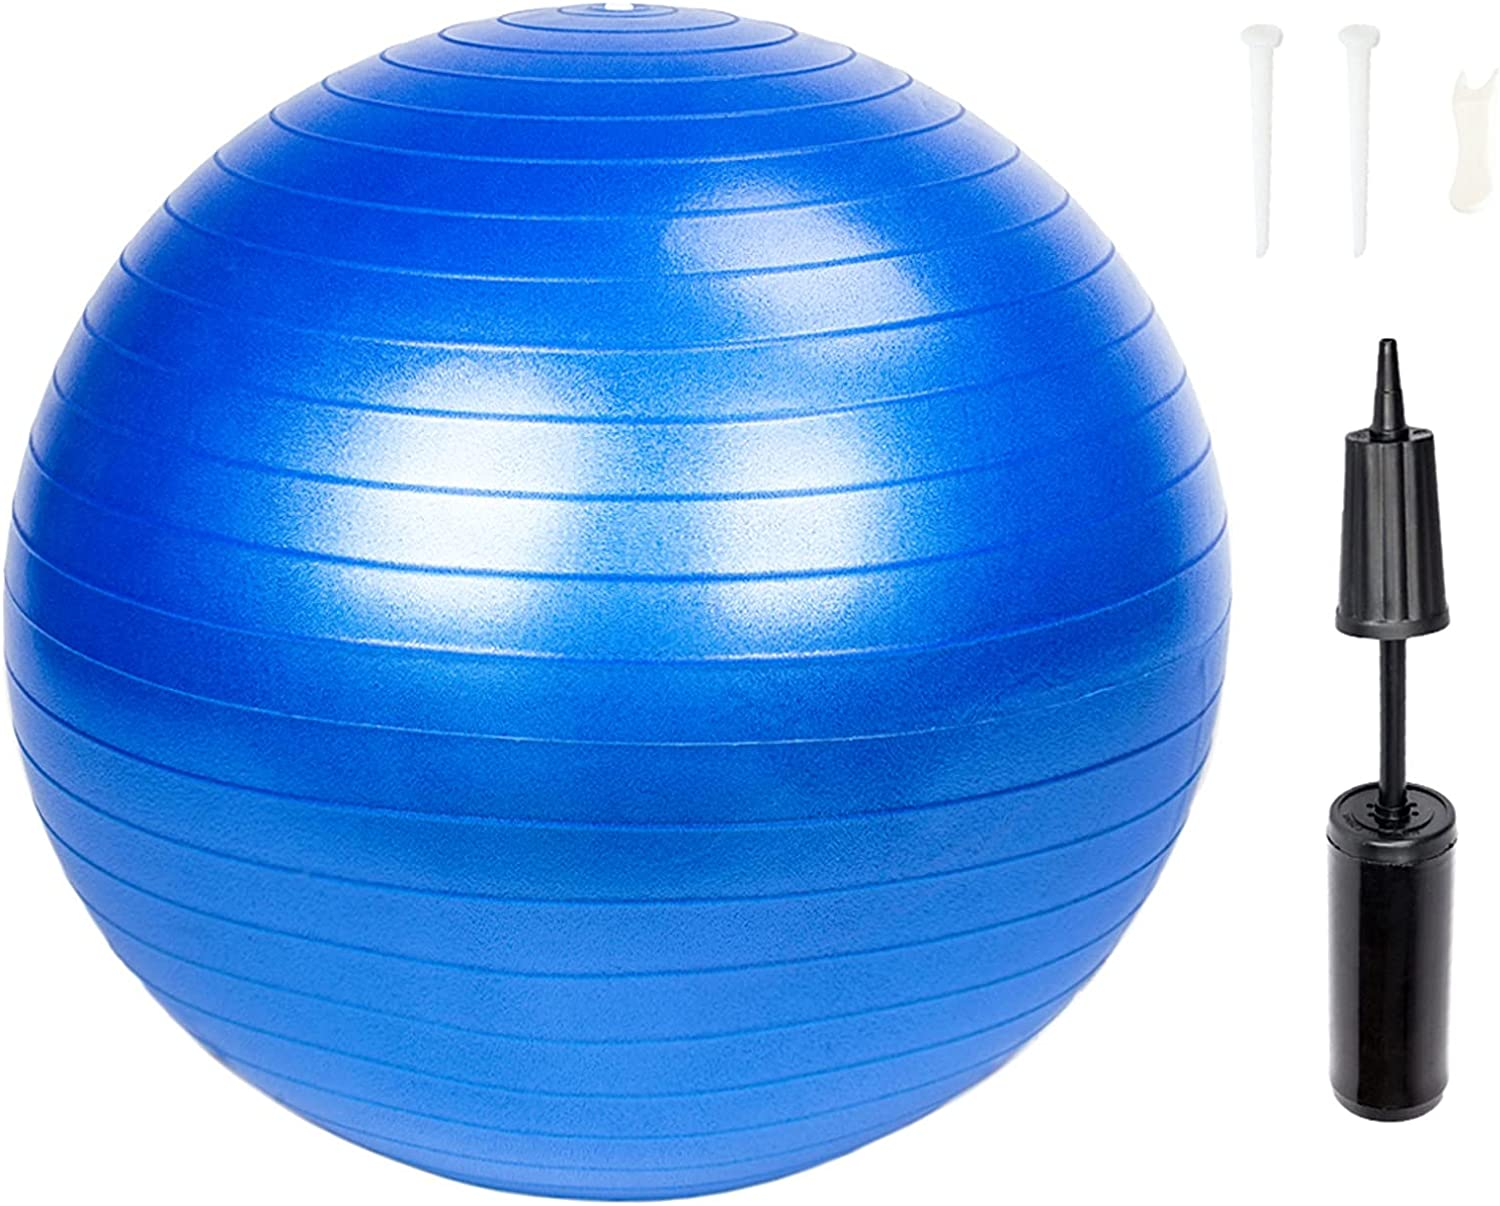 New arrival Xmeihui Exercise Ball for Fitness Air gift Pump Chair Yoga f